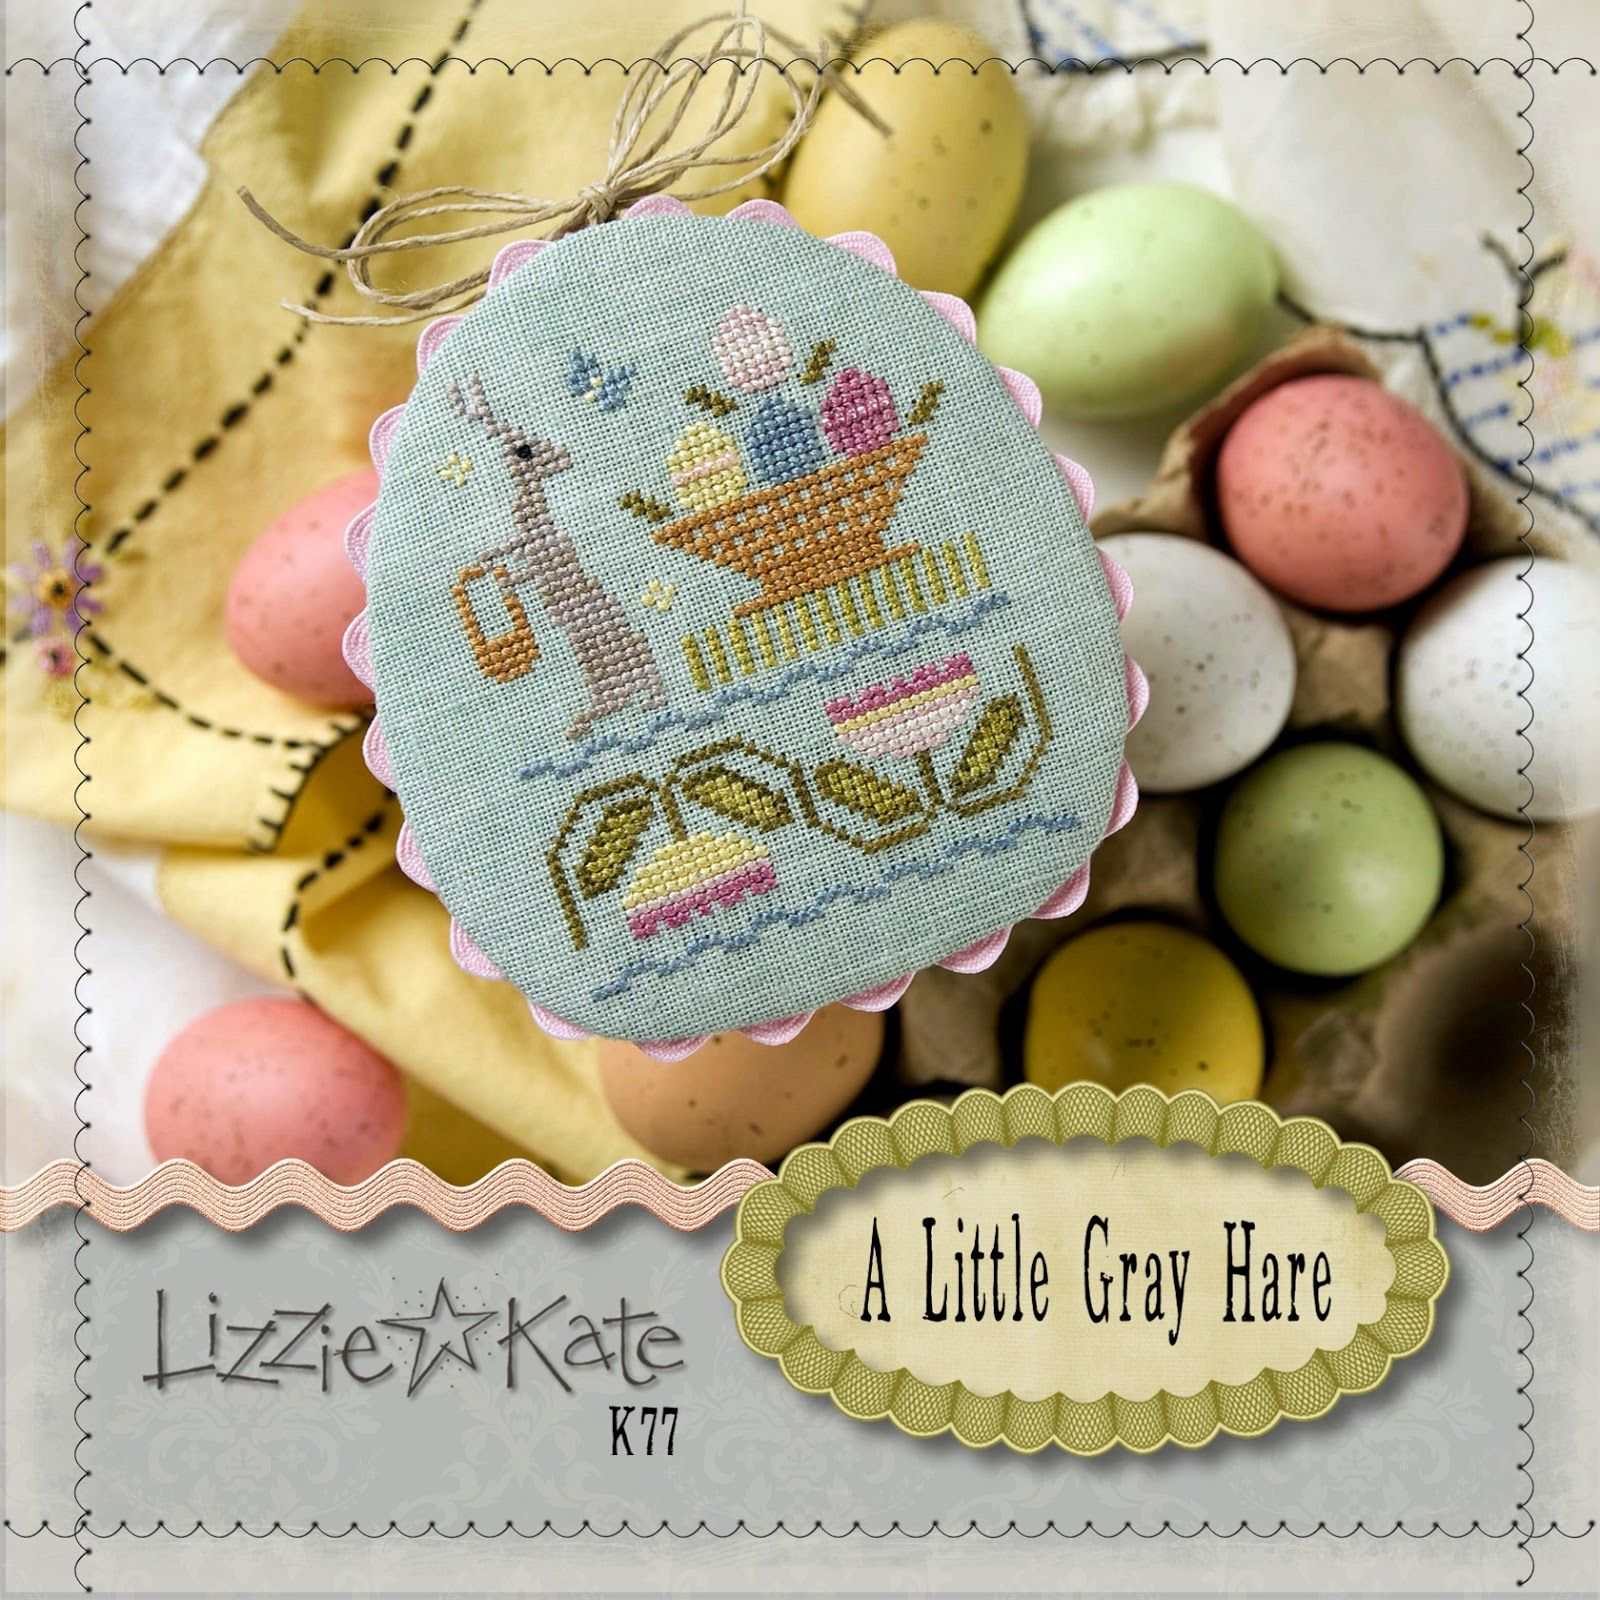 A Little Gray Hare is the title of this Market Exclusive kit from Lizzie Kate and Norden Crafts. The kit includes the 30 ct fabric, fibers, needle and cross stitch pattern.